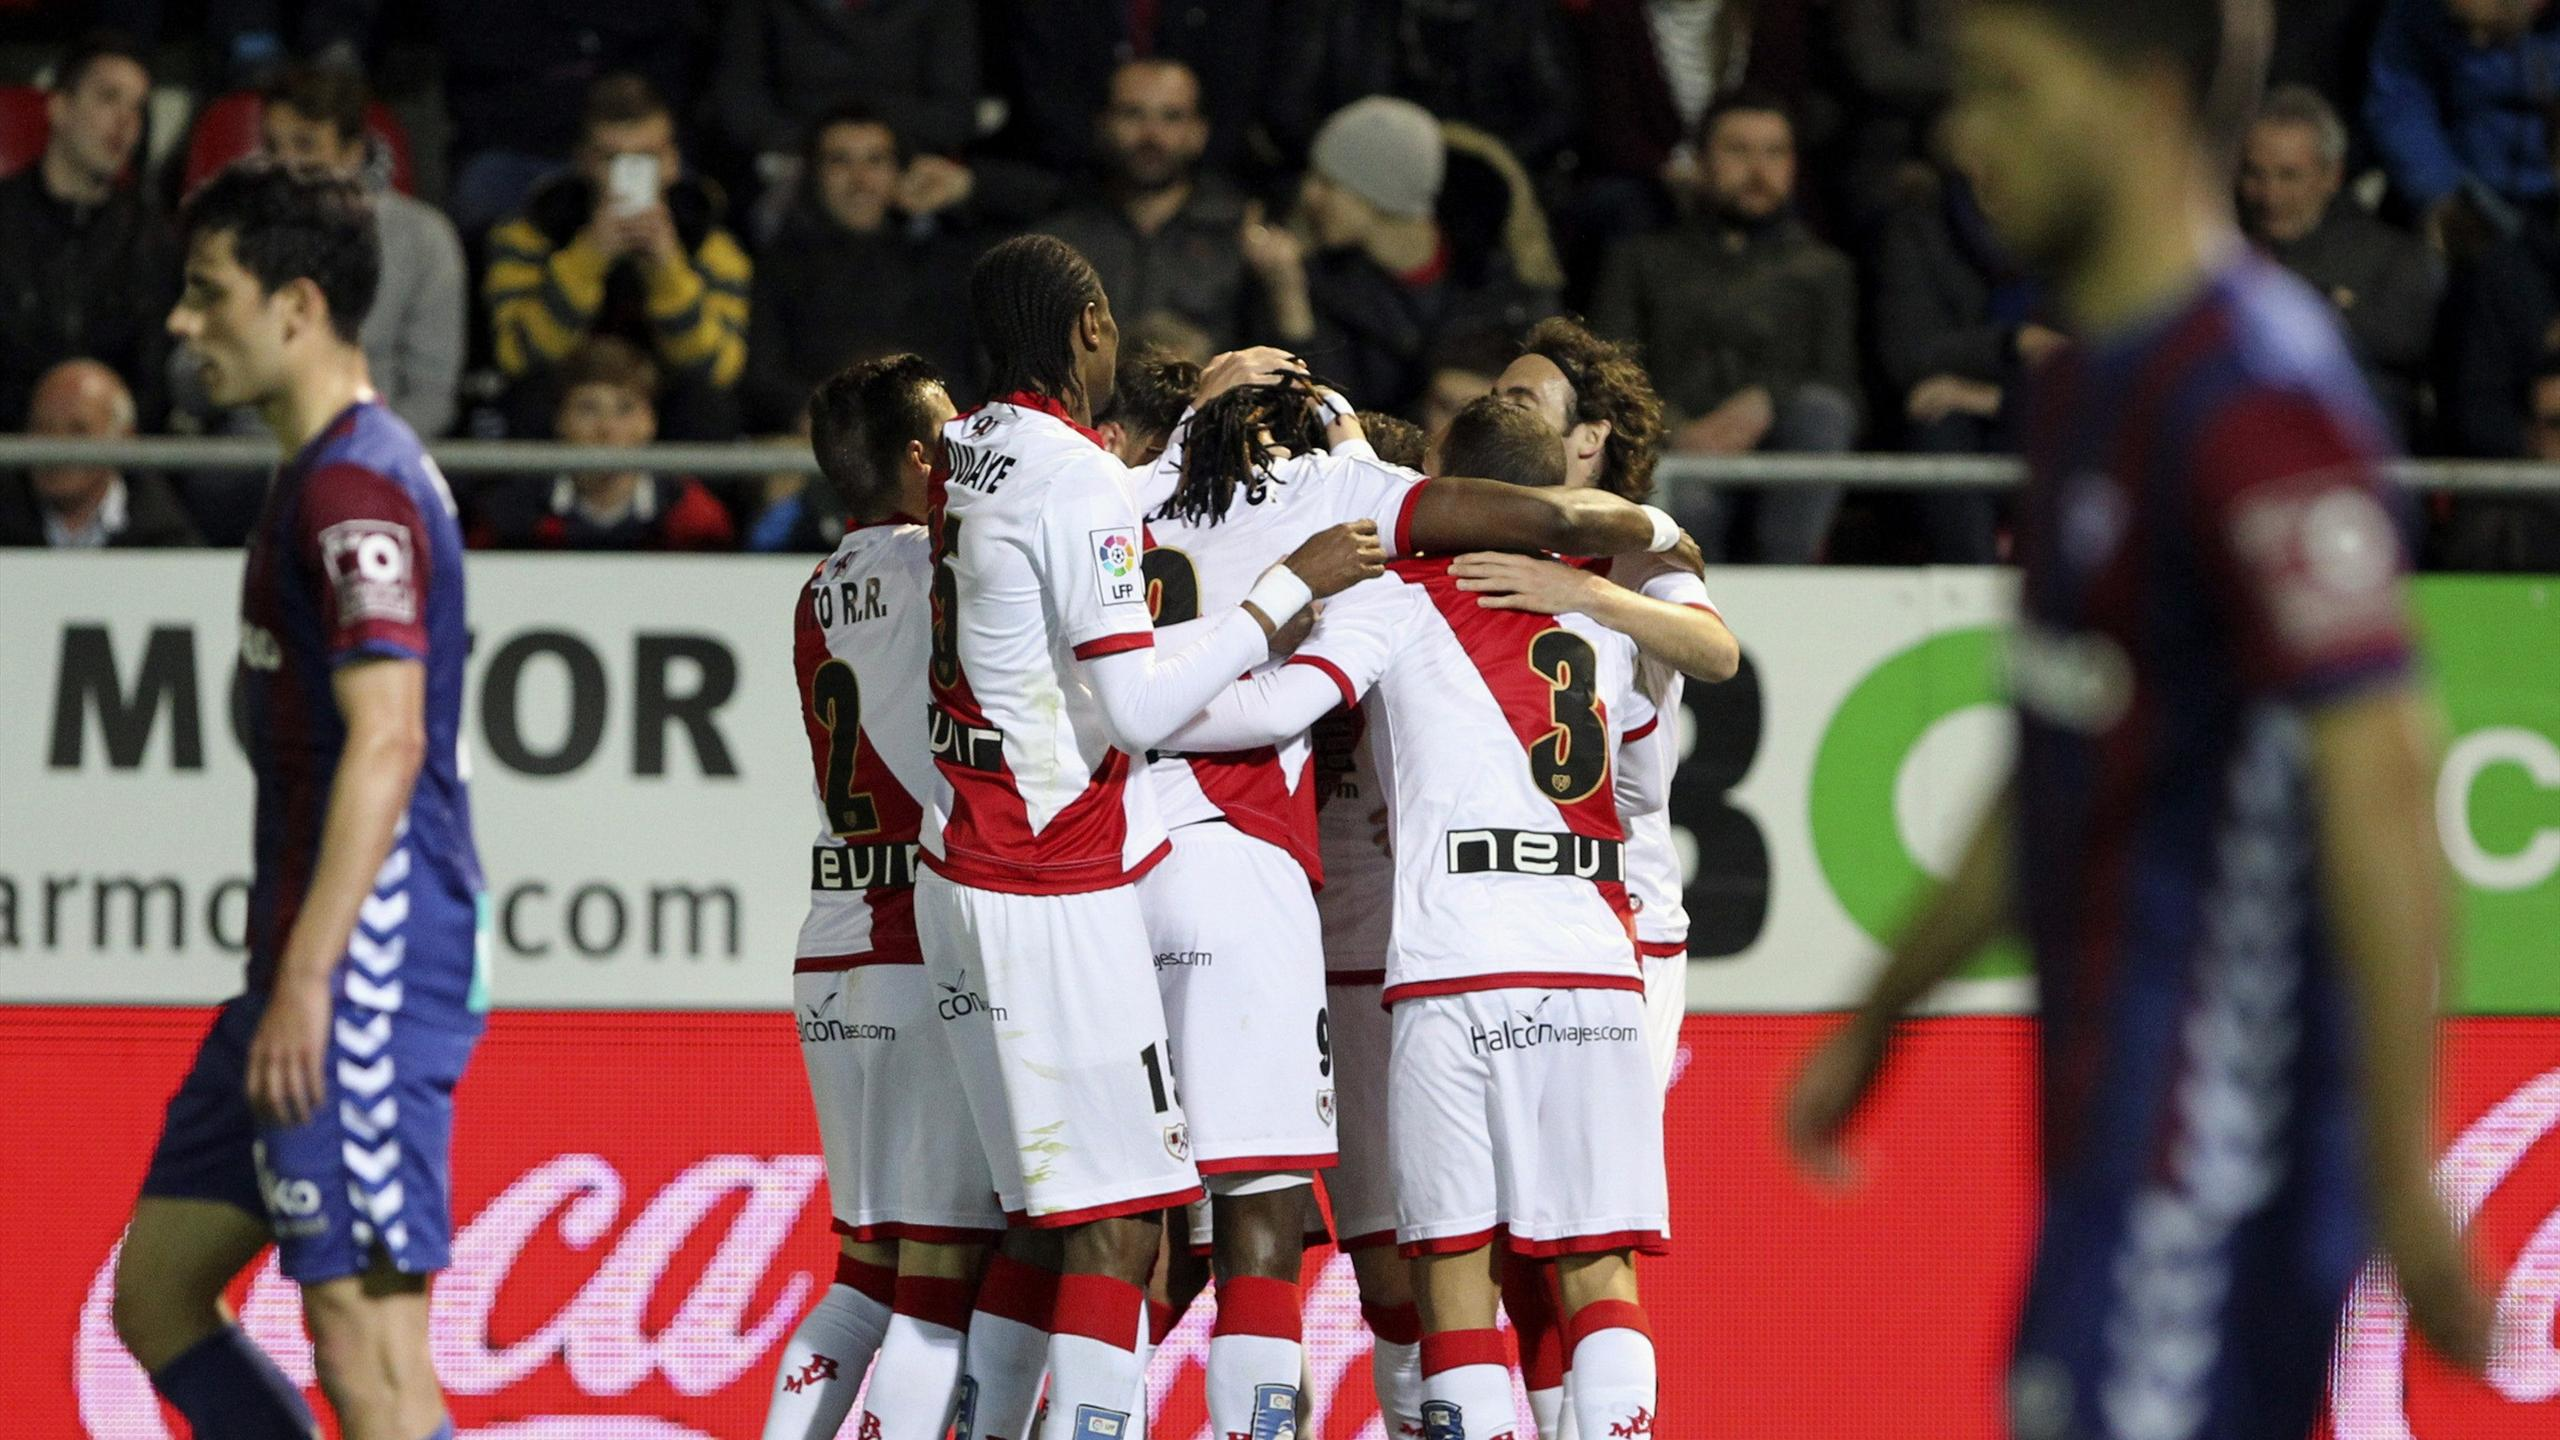 Video: Eibar vs Rayo Vallecano